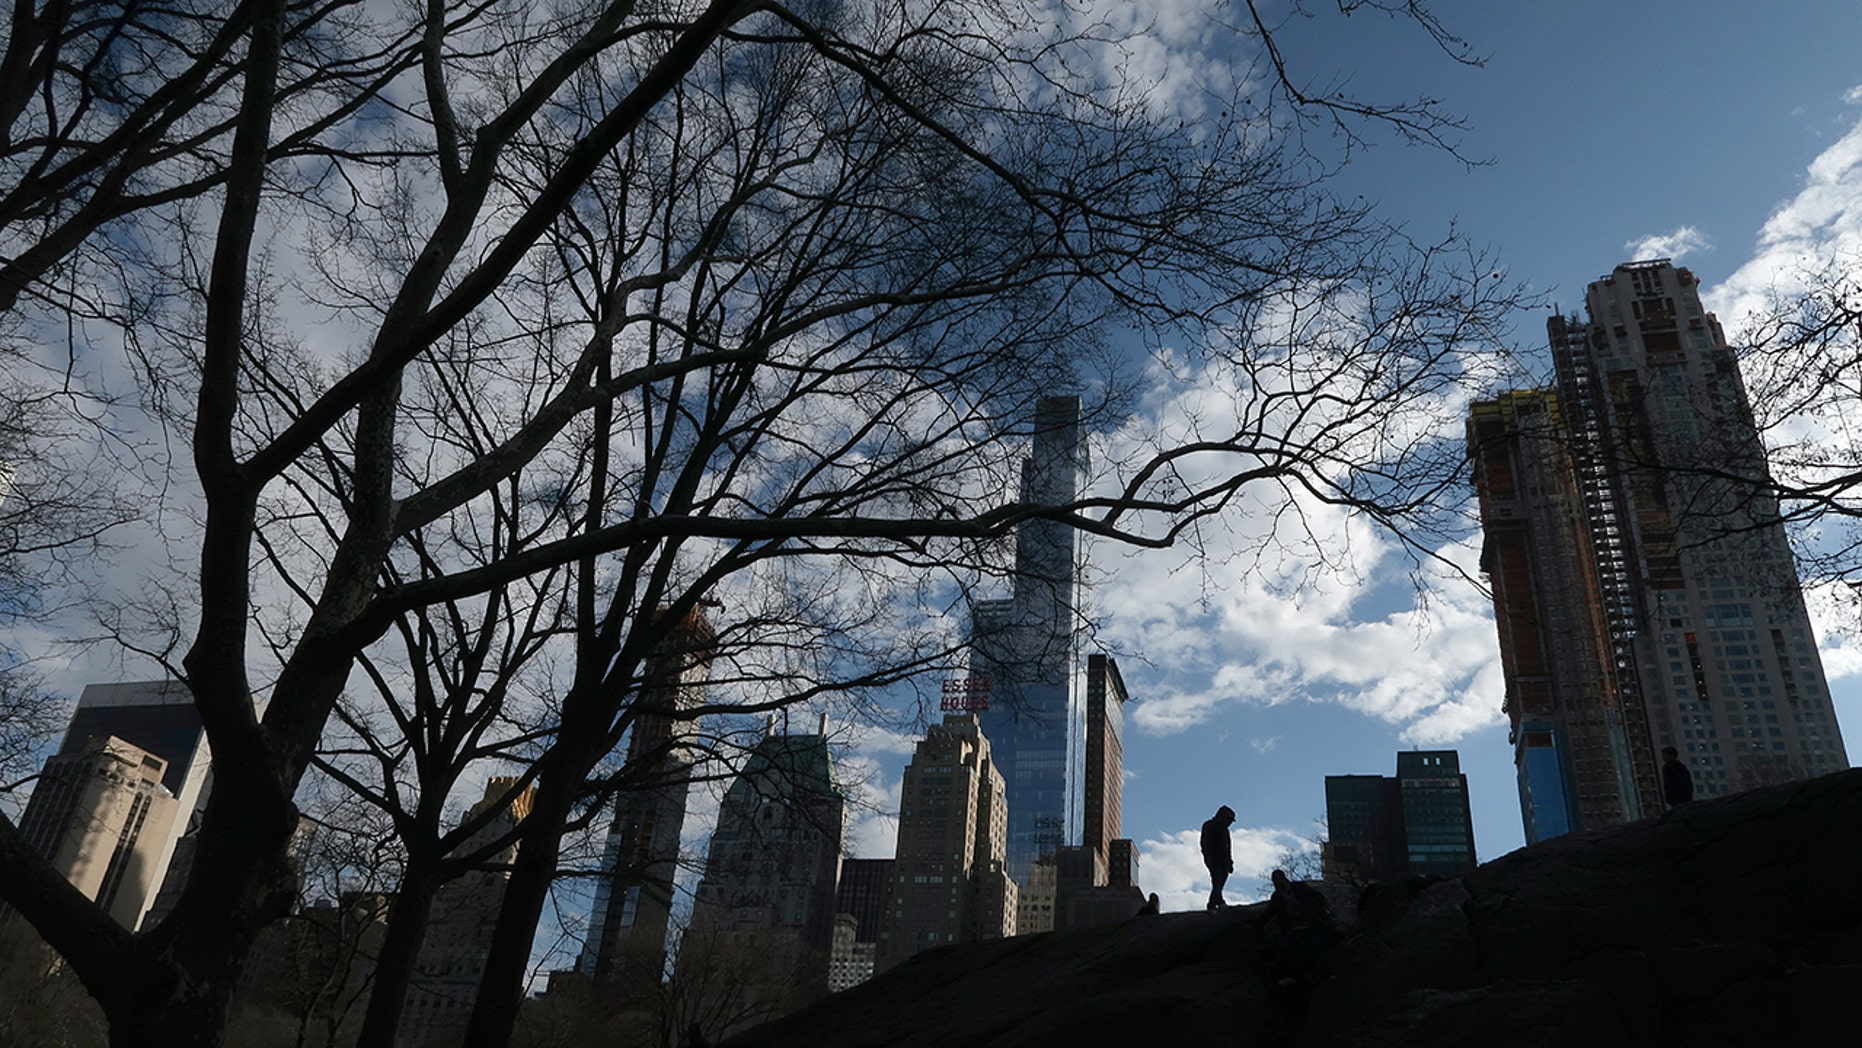 Central Park in front of residential towers under construction along 59th Street on April 4, 2018 in New York City. (Photo by Gary Hershorn/Getty Images)